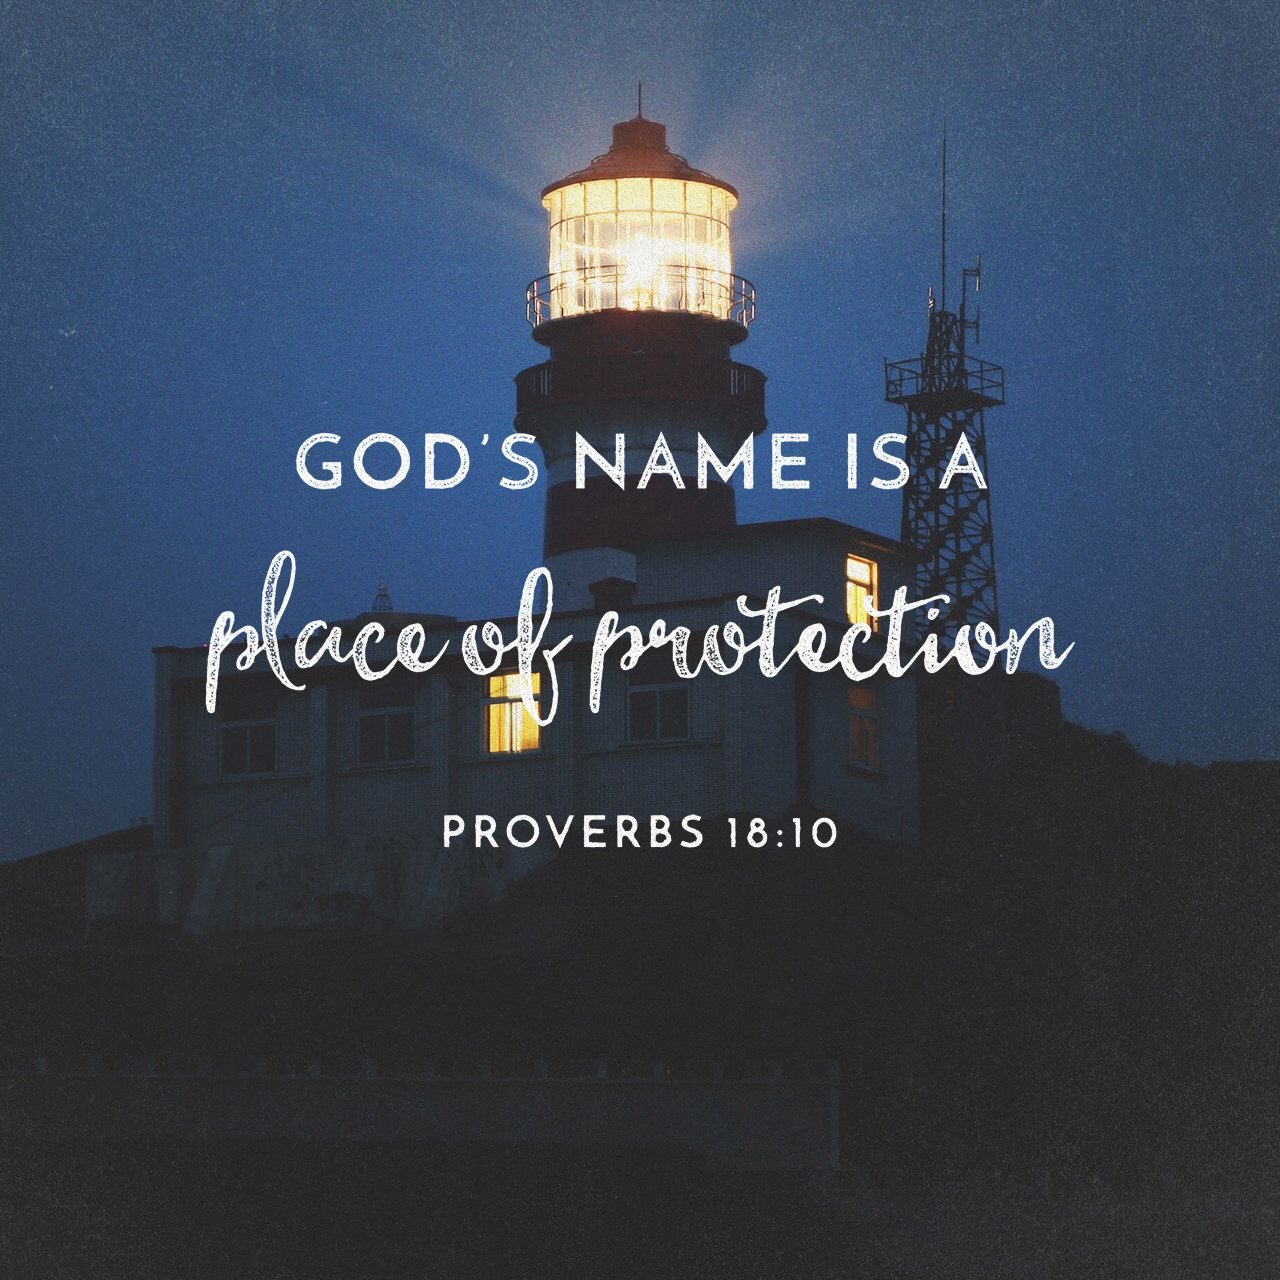 """The name of the Lord is a strong tower: the righteous runneth into it, and is safe."" ‭‭Proverbs‬ ‭18:10‬ ‭KJV‬‬ http://bible.com/1/pro.18.10.kjv"